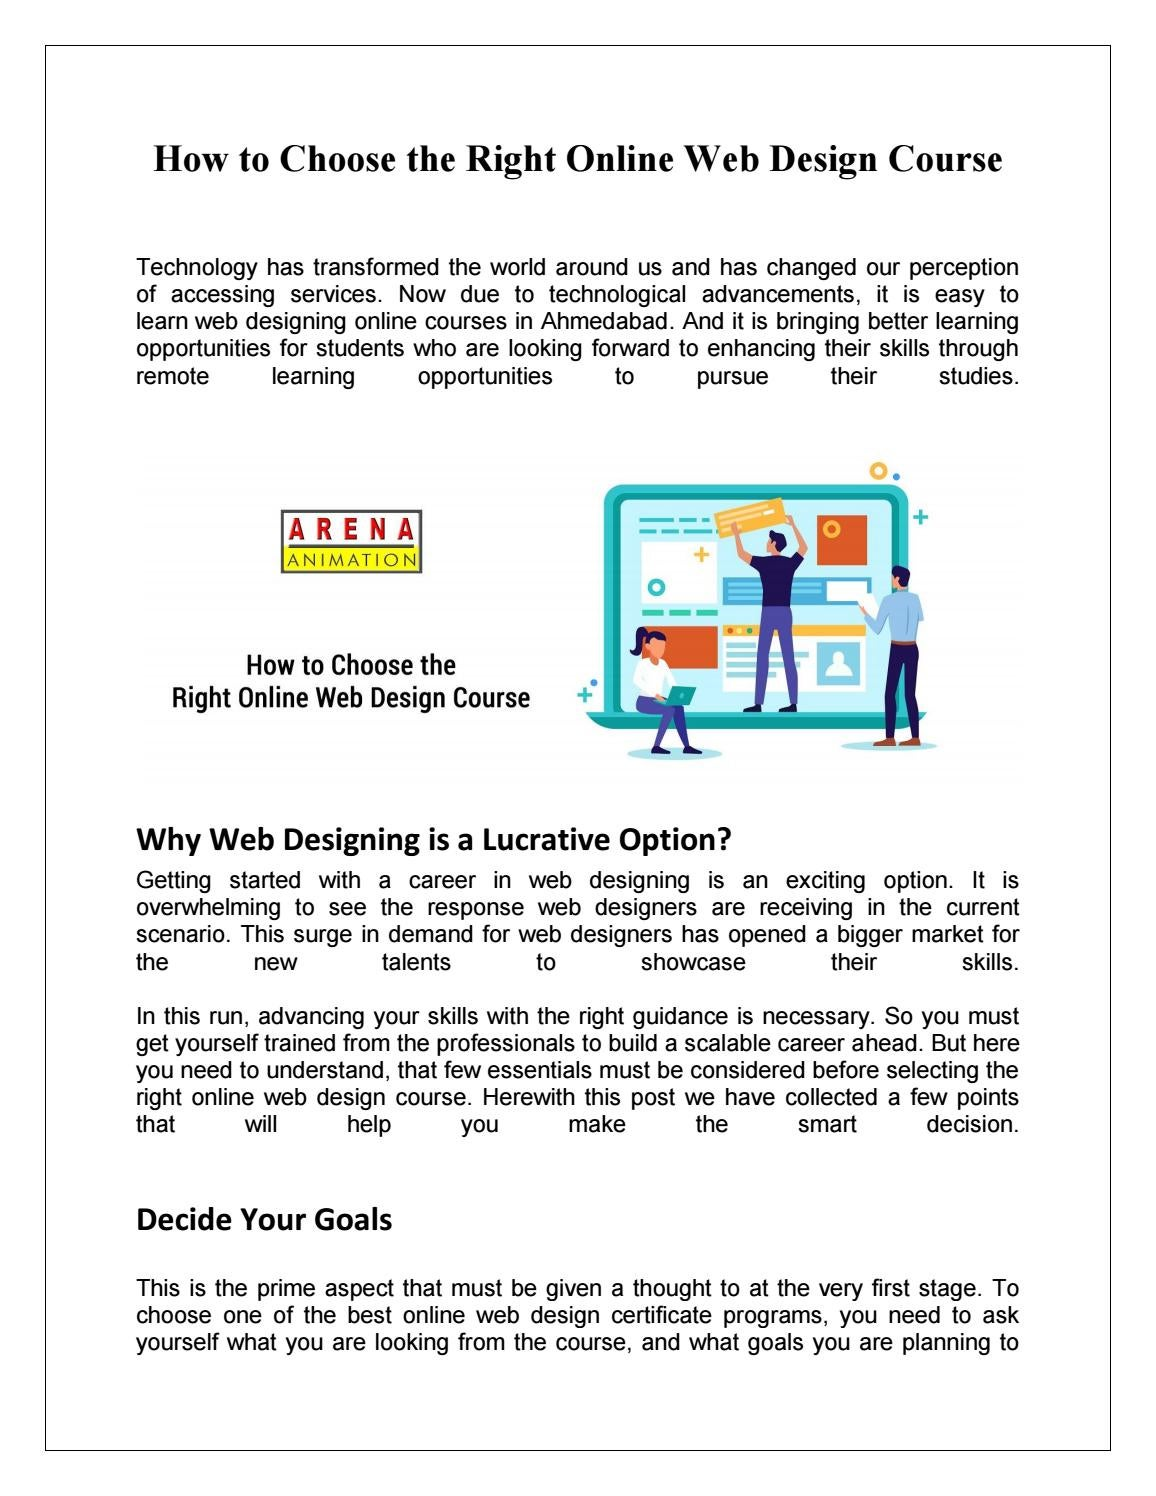 Web Design Training Institutes In Ahmedabad By Arena Animation Issuu